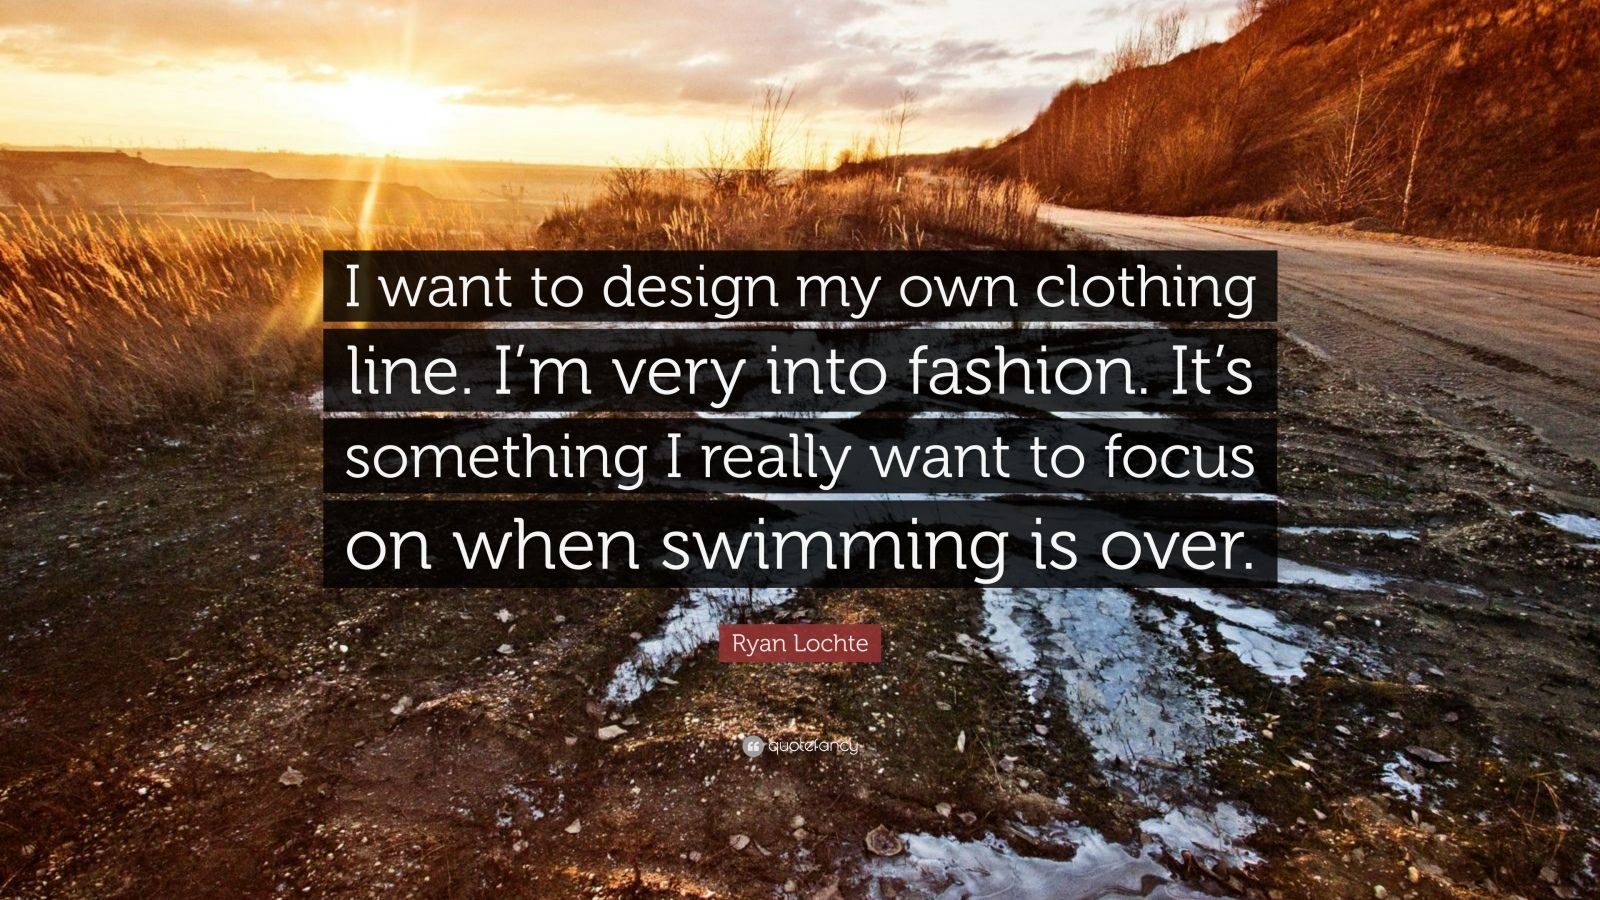 ryan lochte quote i want to design my own clothing line